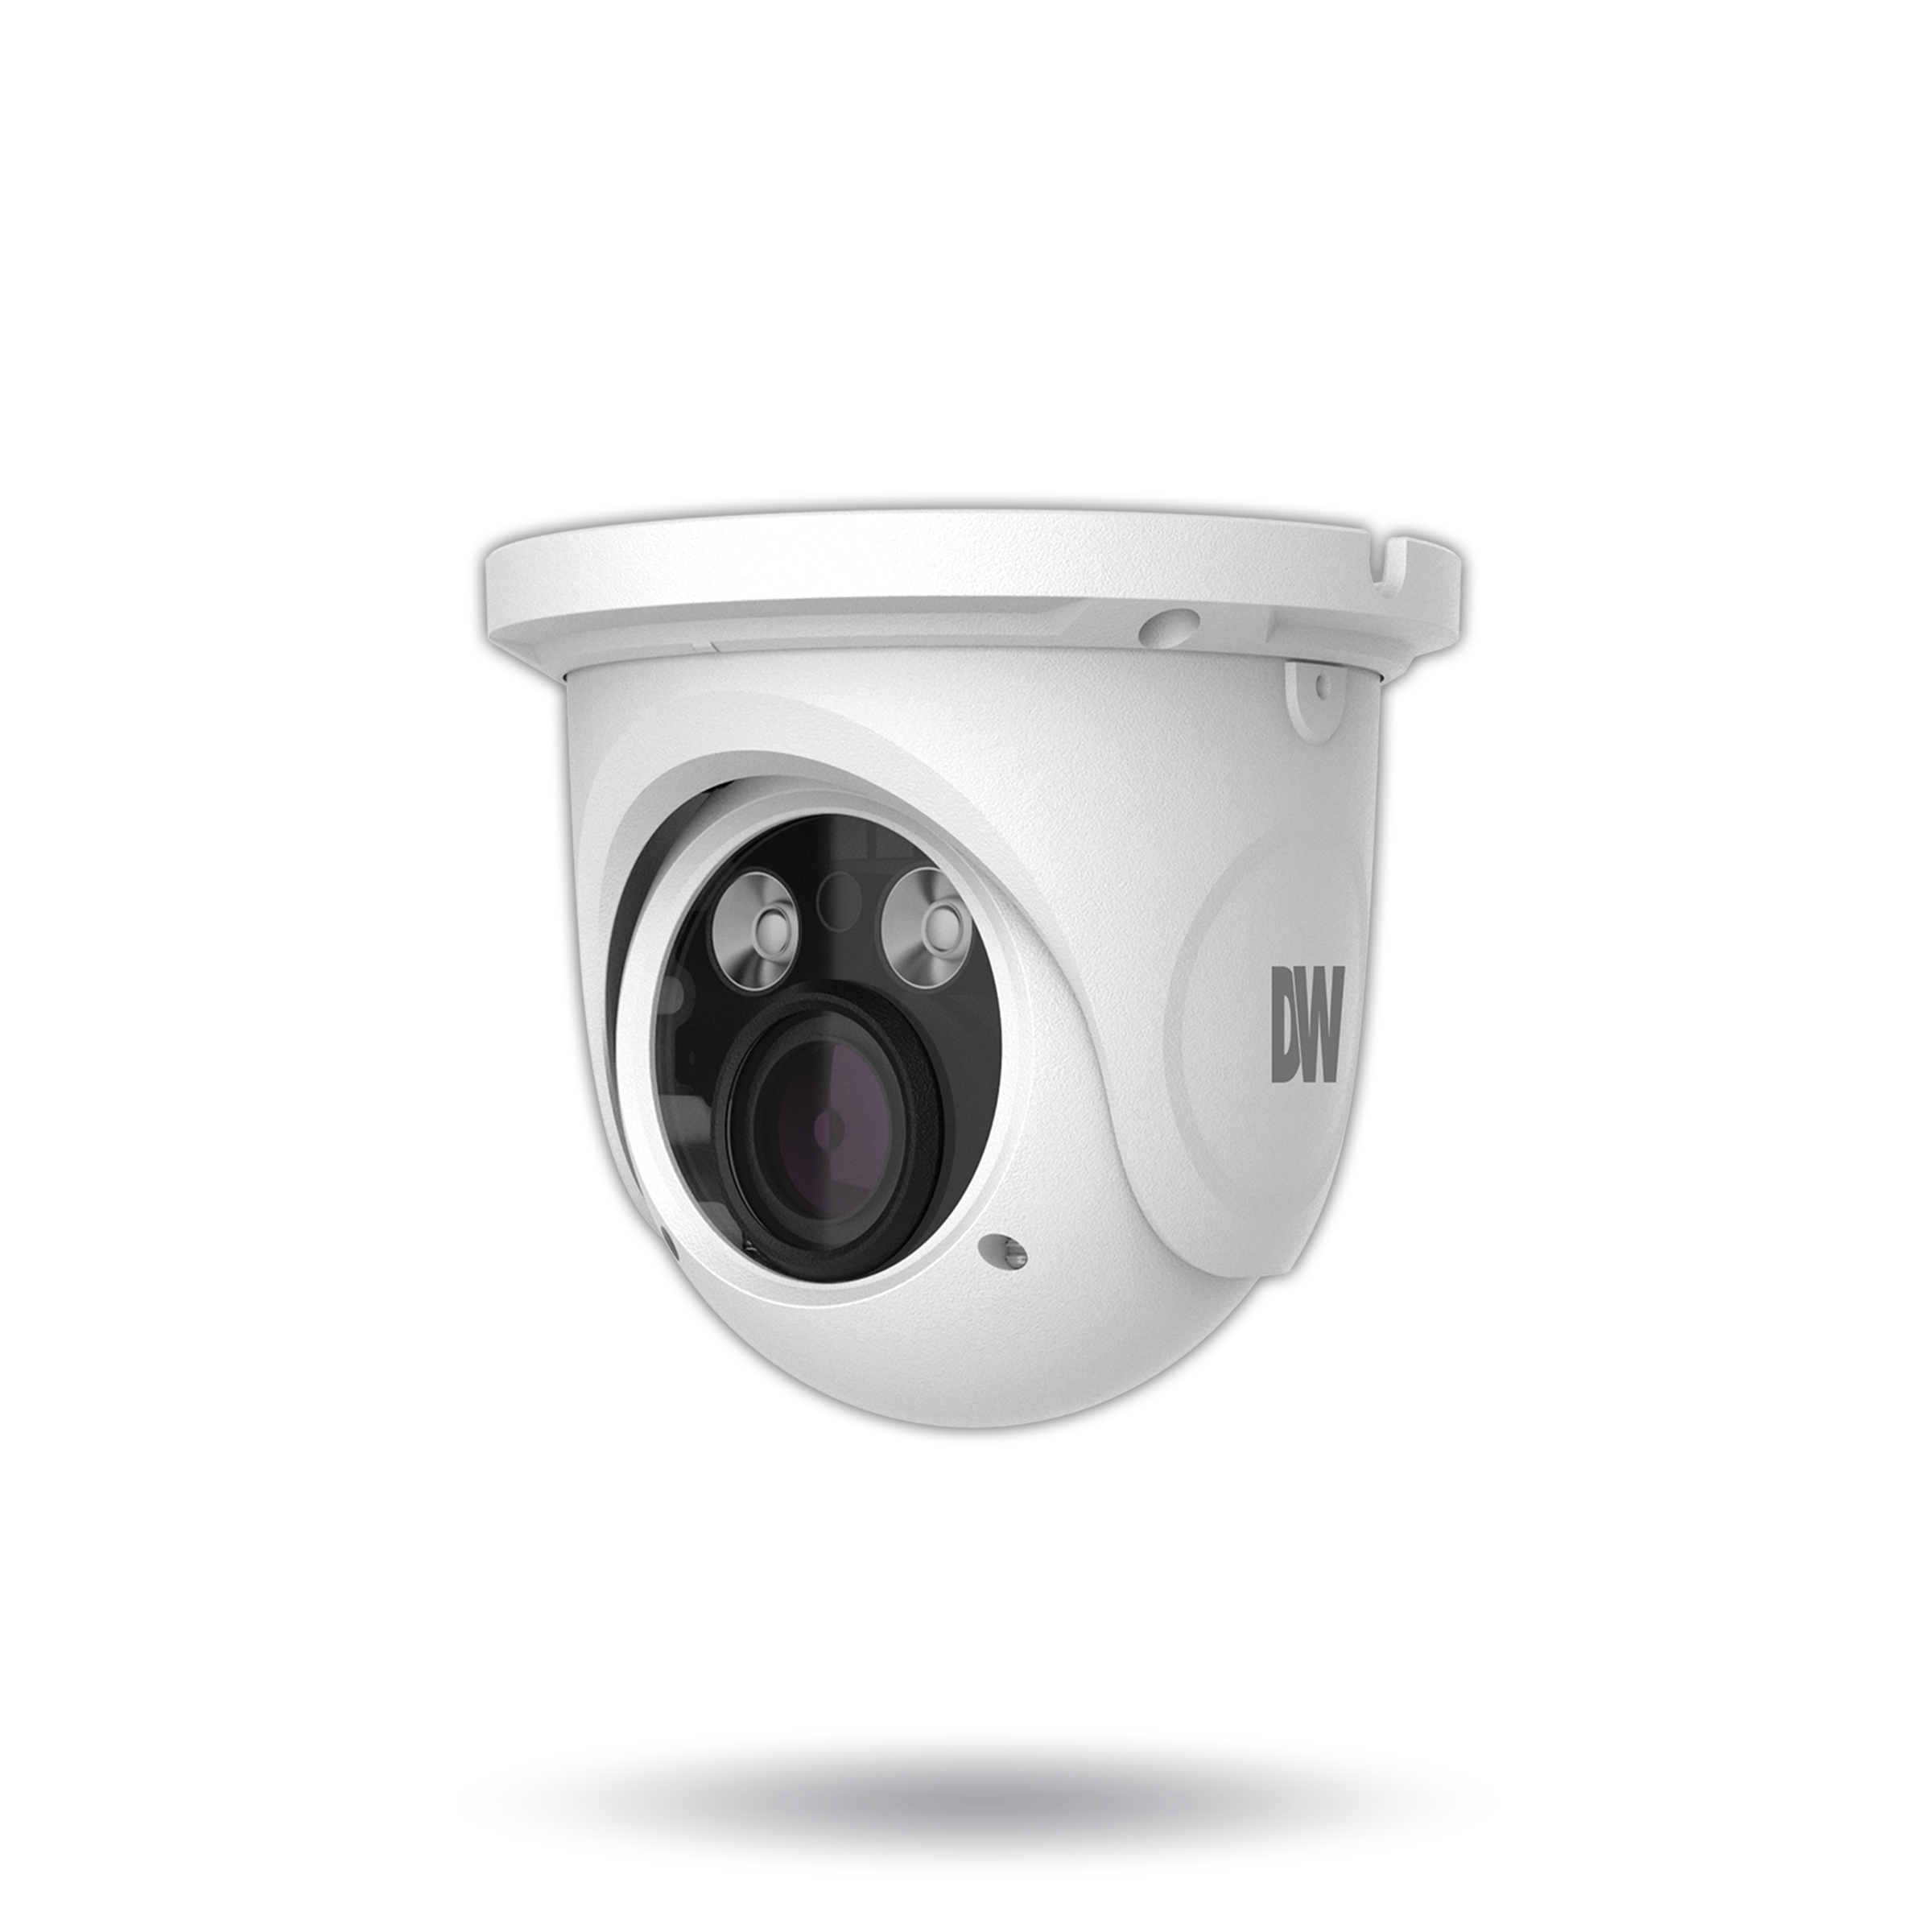 MEGApix® 4MP Turret IP Camera with Vari-Focal and Analytics